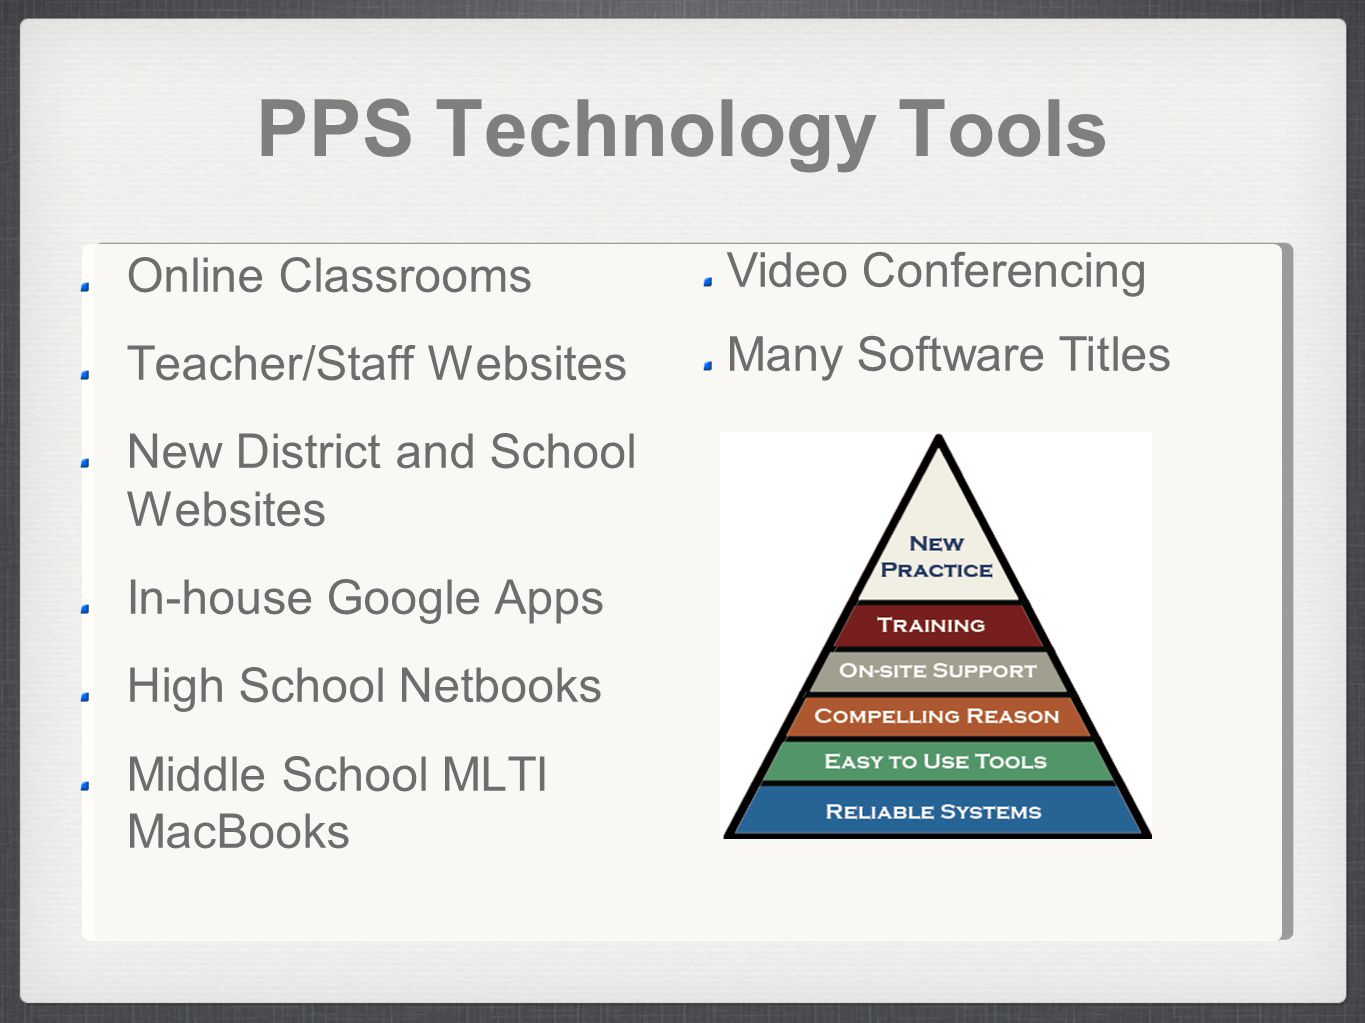 Online Classrooms Teacher/Staff Websites New District and School Websites In-house Google Apps High School Netbooks Middle School MLTI MacBooks PPS Technology Tools Video Conferencing Many Software Titles